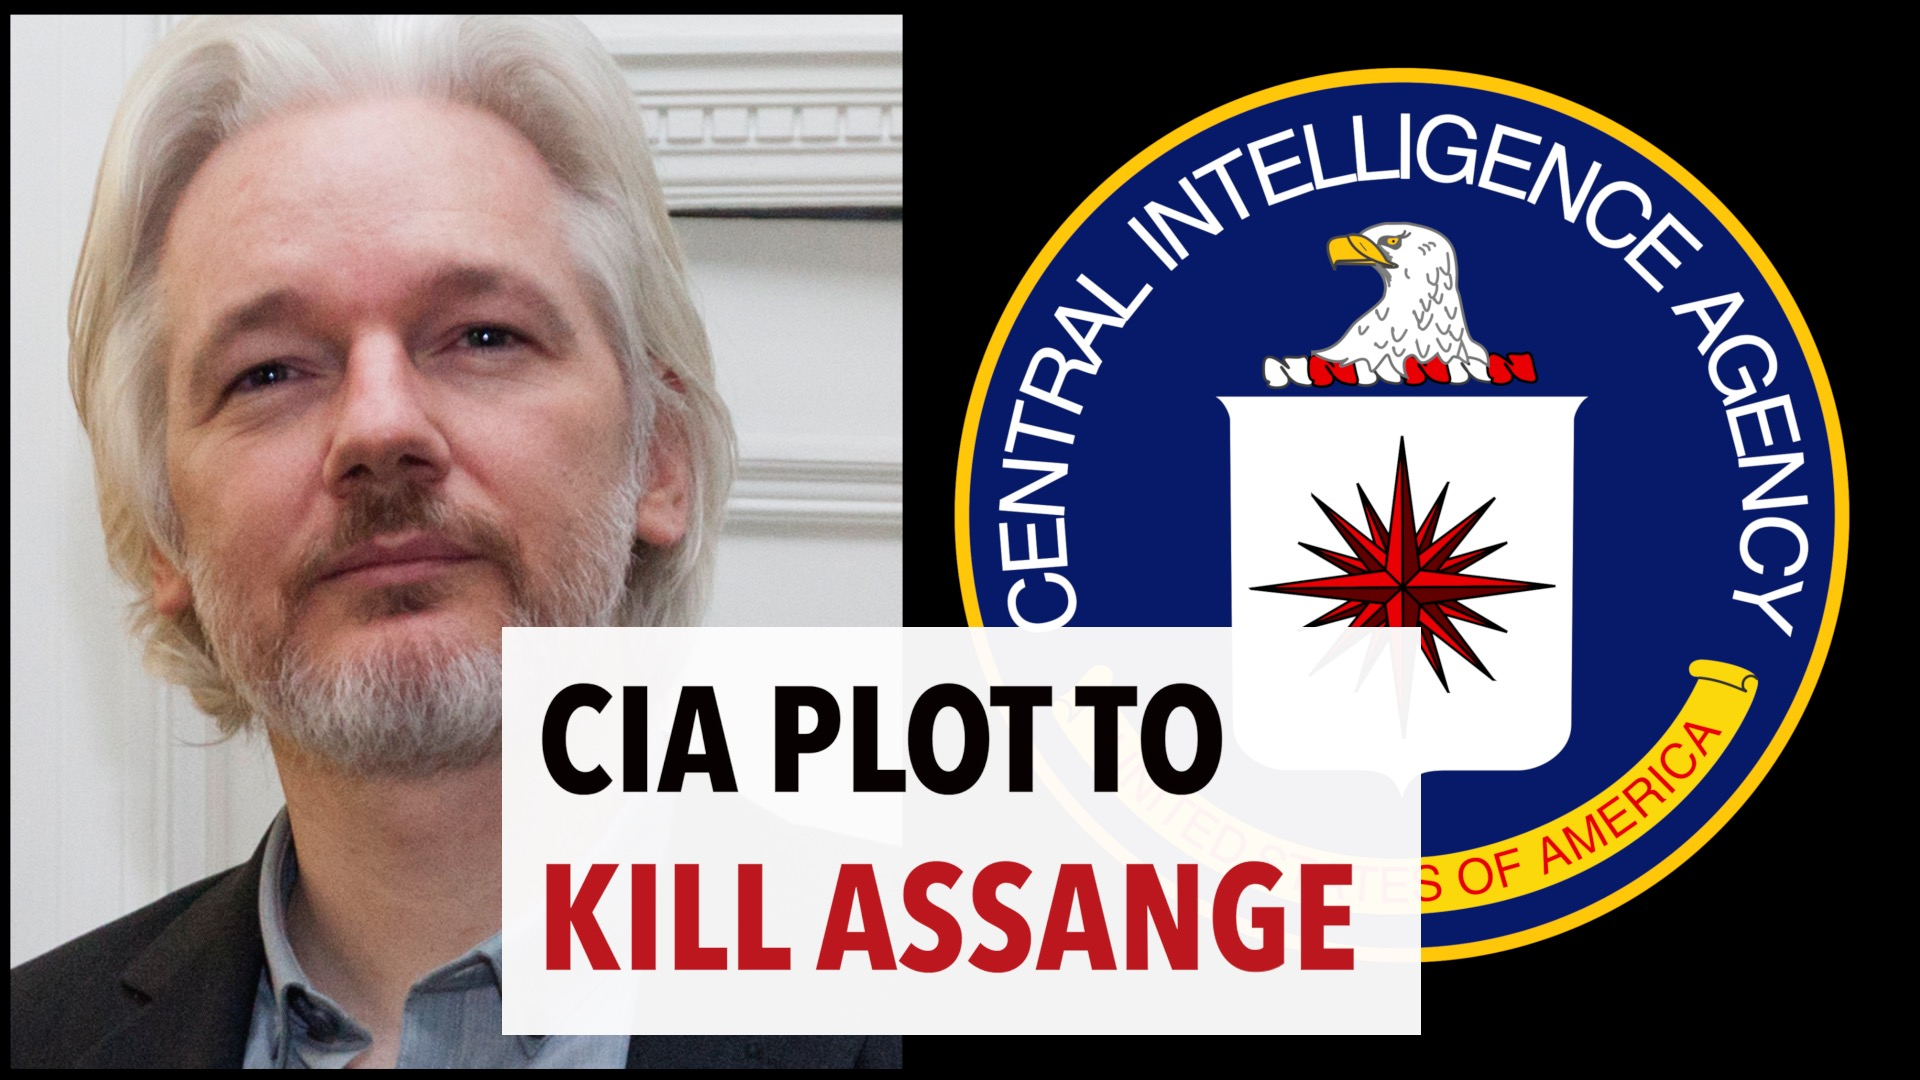 The CIA Plot to assassinate Assange | Former CIA Officer Speaks out